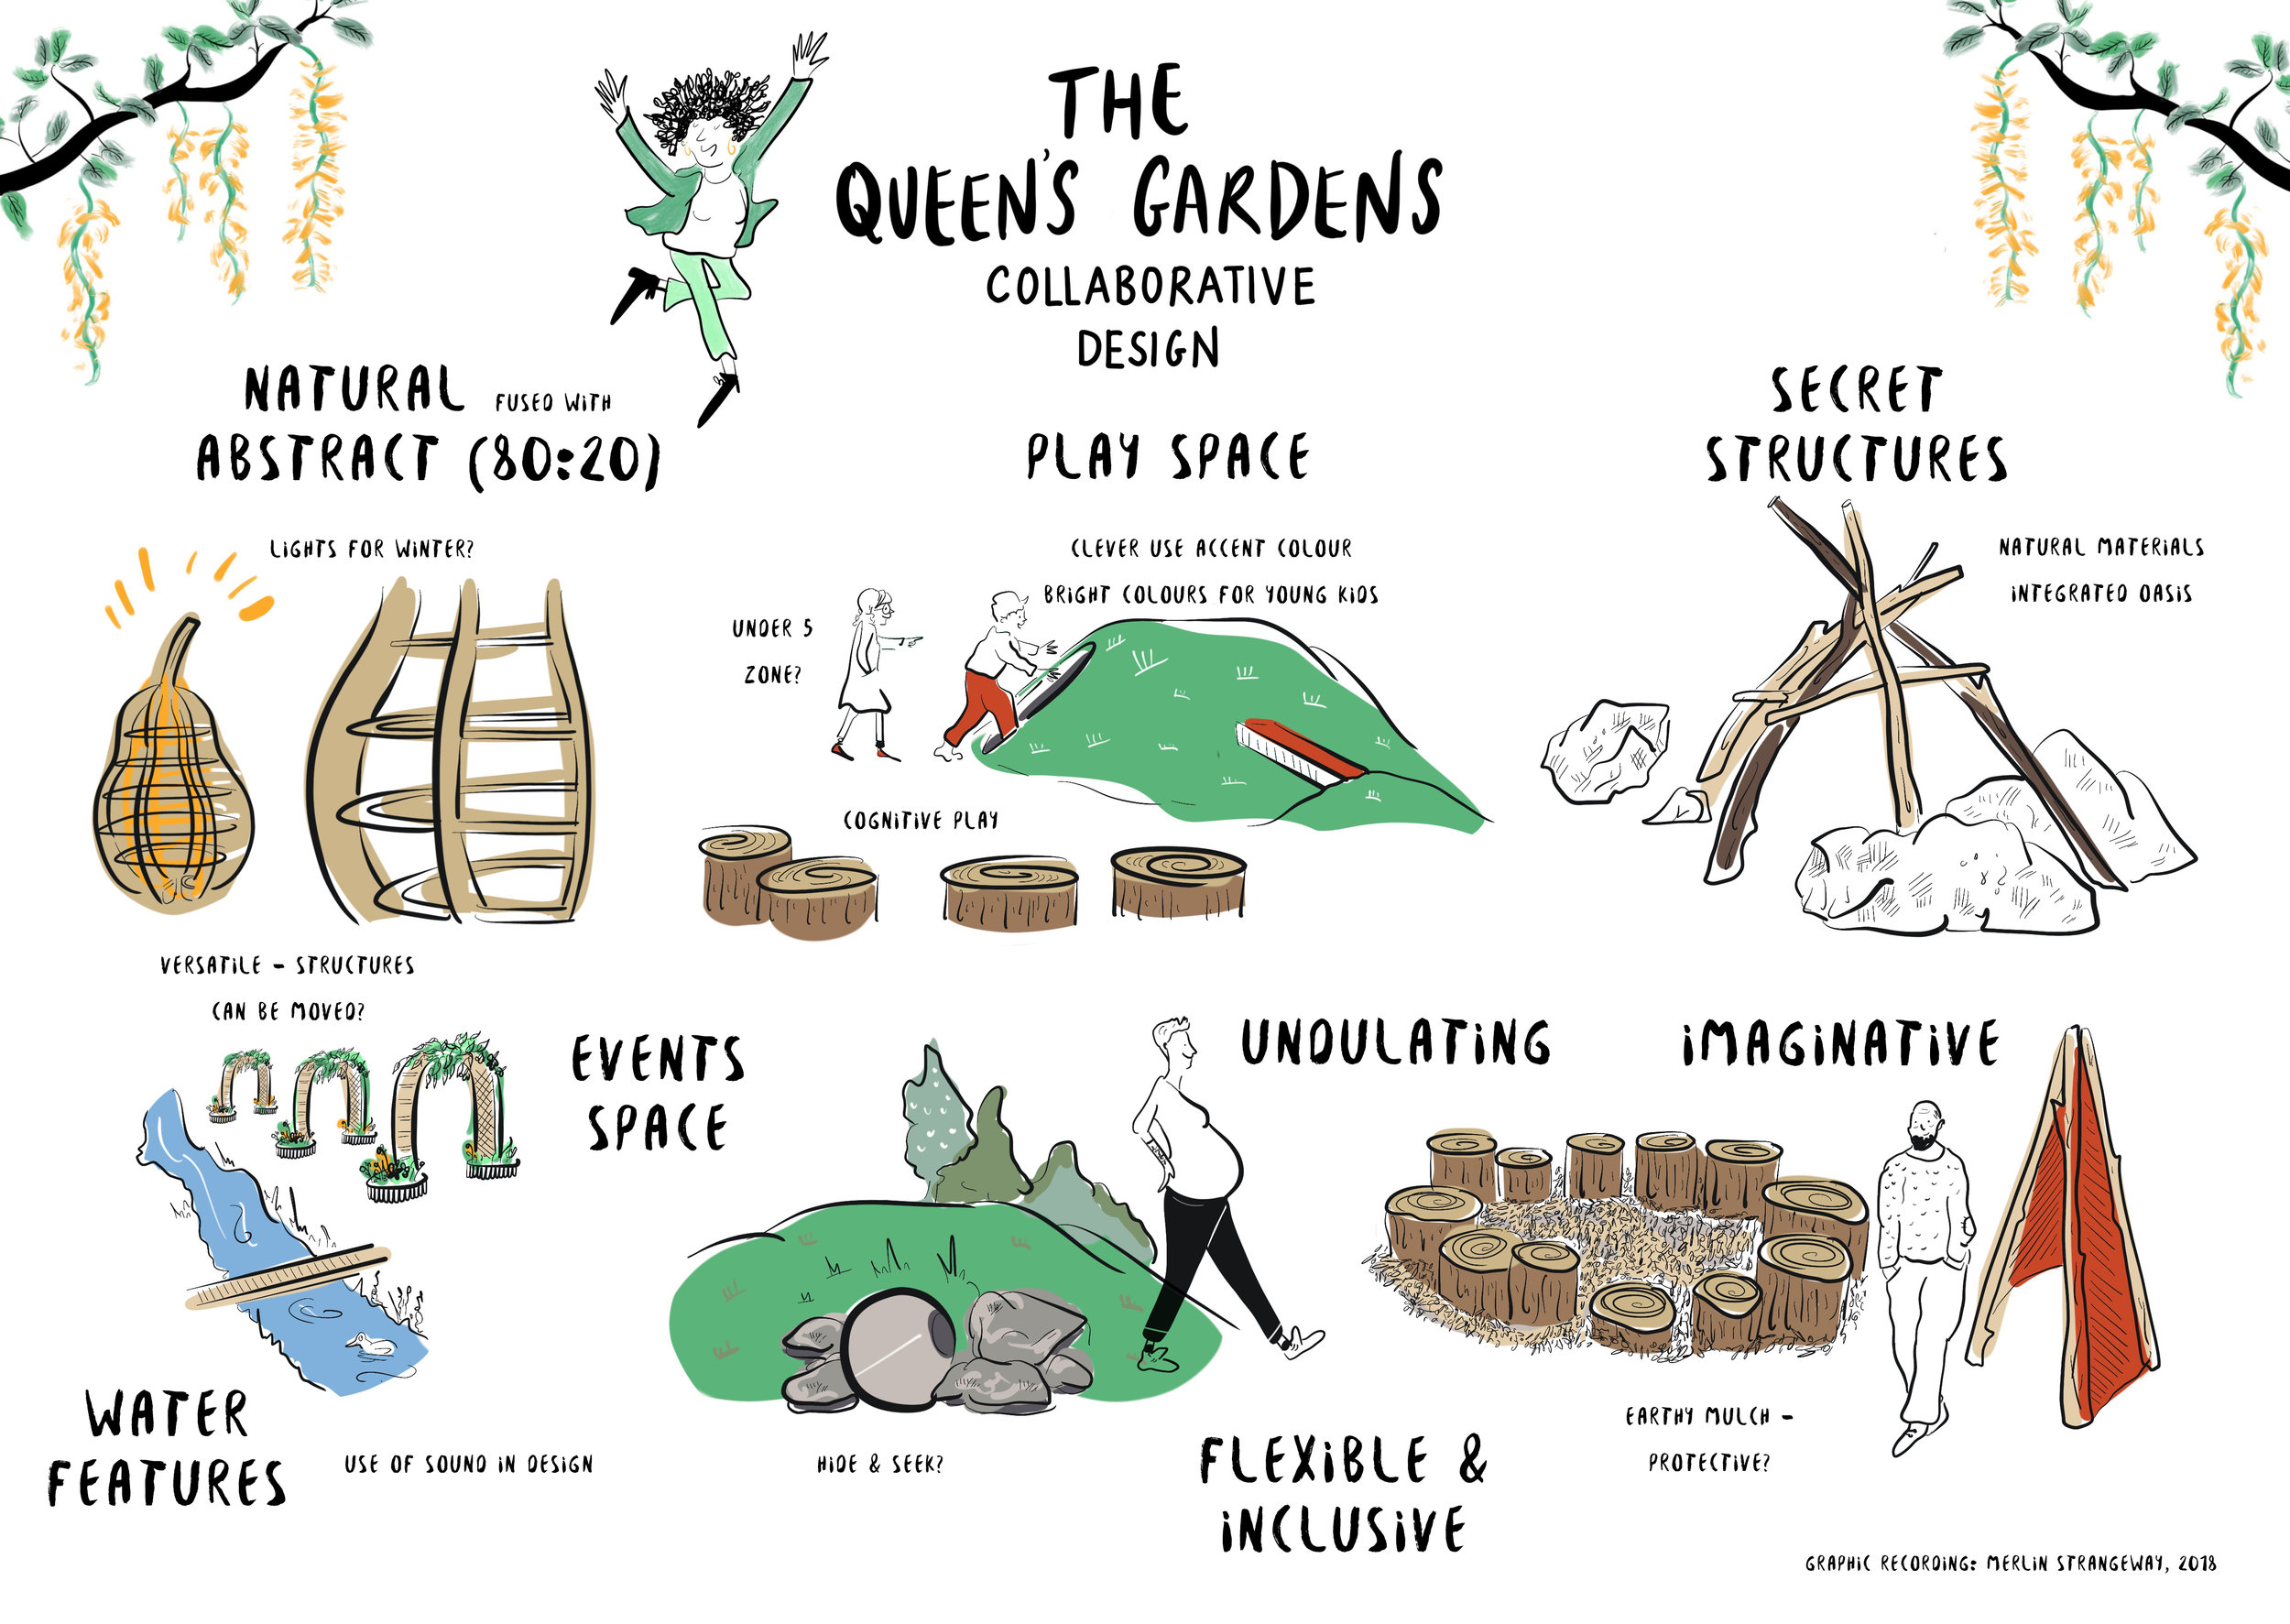 The Queen's Garden  was an innovative collaborative design project connecting developers (HUB), community engagement specialists (Kaizen), Croydon Council and local residents to come together and design this space, using principles of green therapy spaces being vital to connect and support local residents.